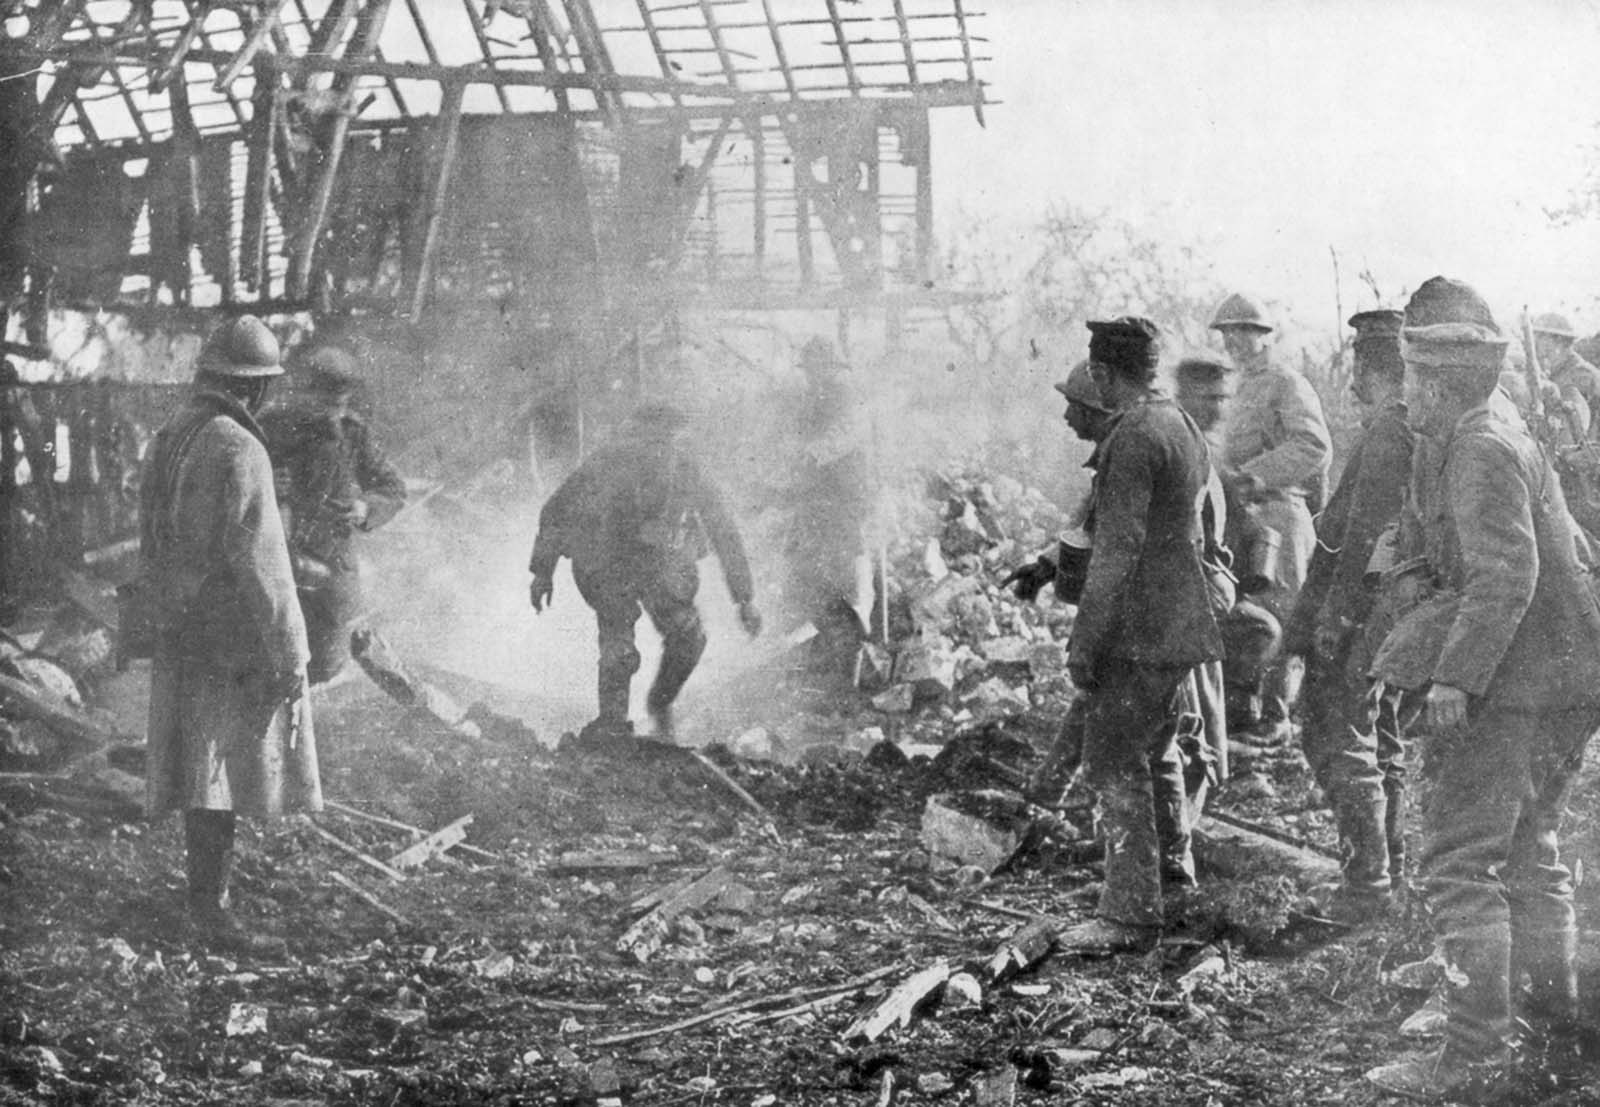 French troops use flamethrowers to flush out German positions in the town of Cantigny, France. 1918.